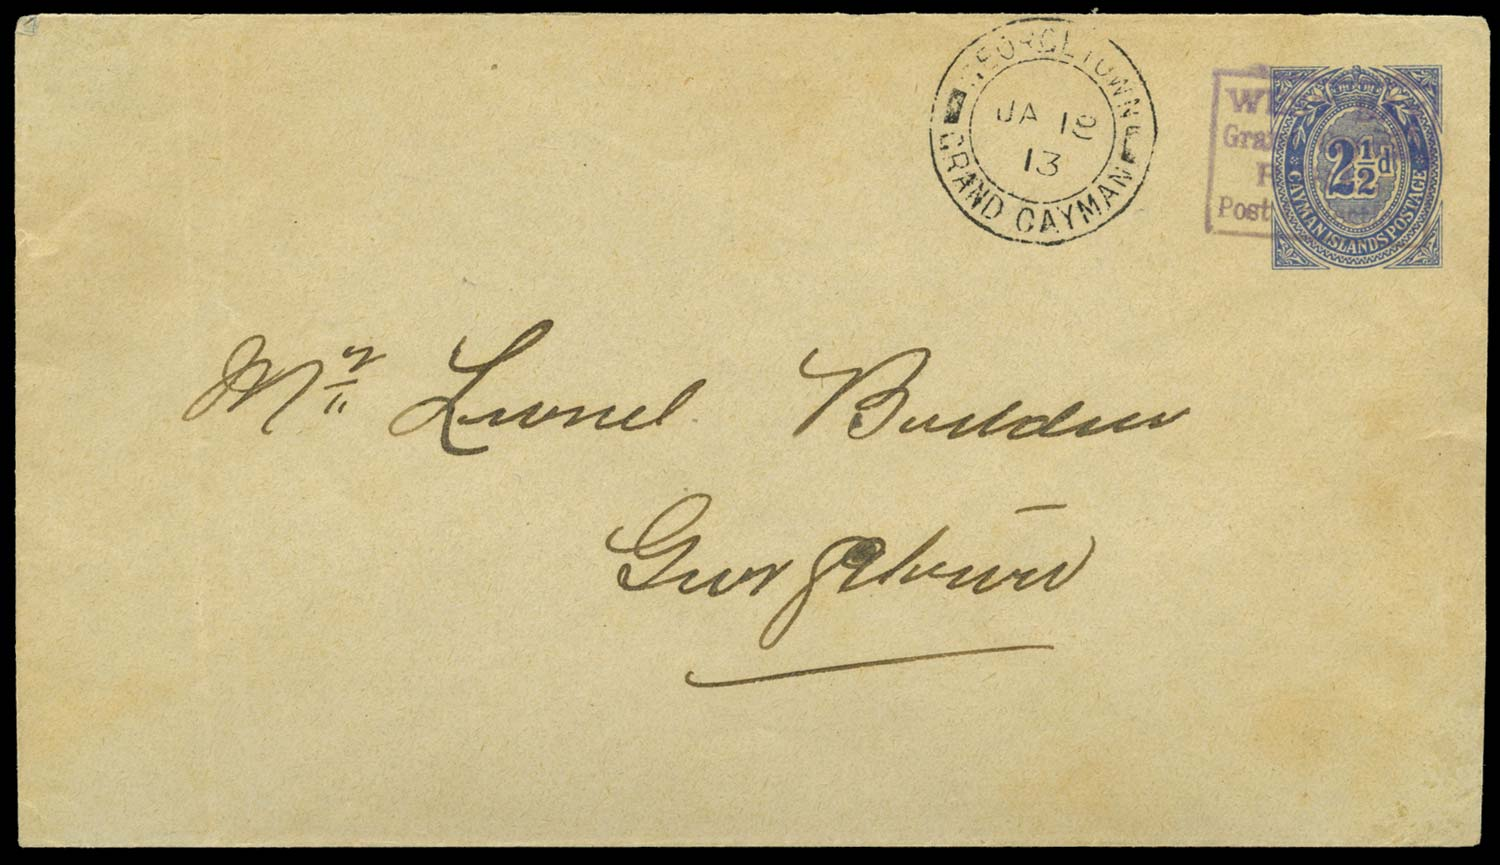 CAYMAN ISLANDS 1911 Cover